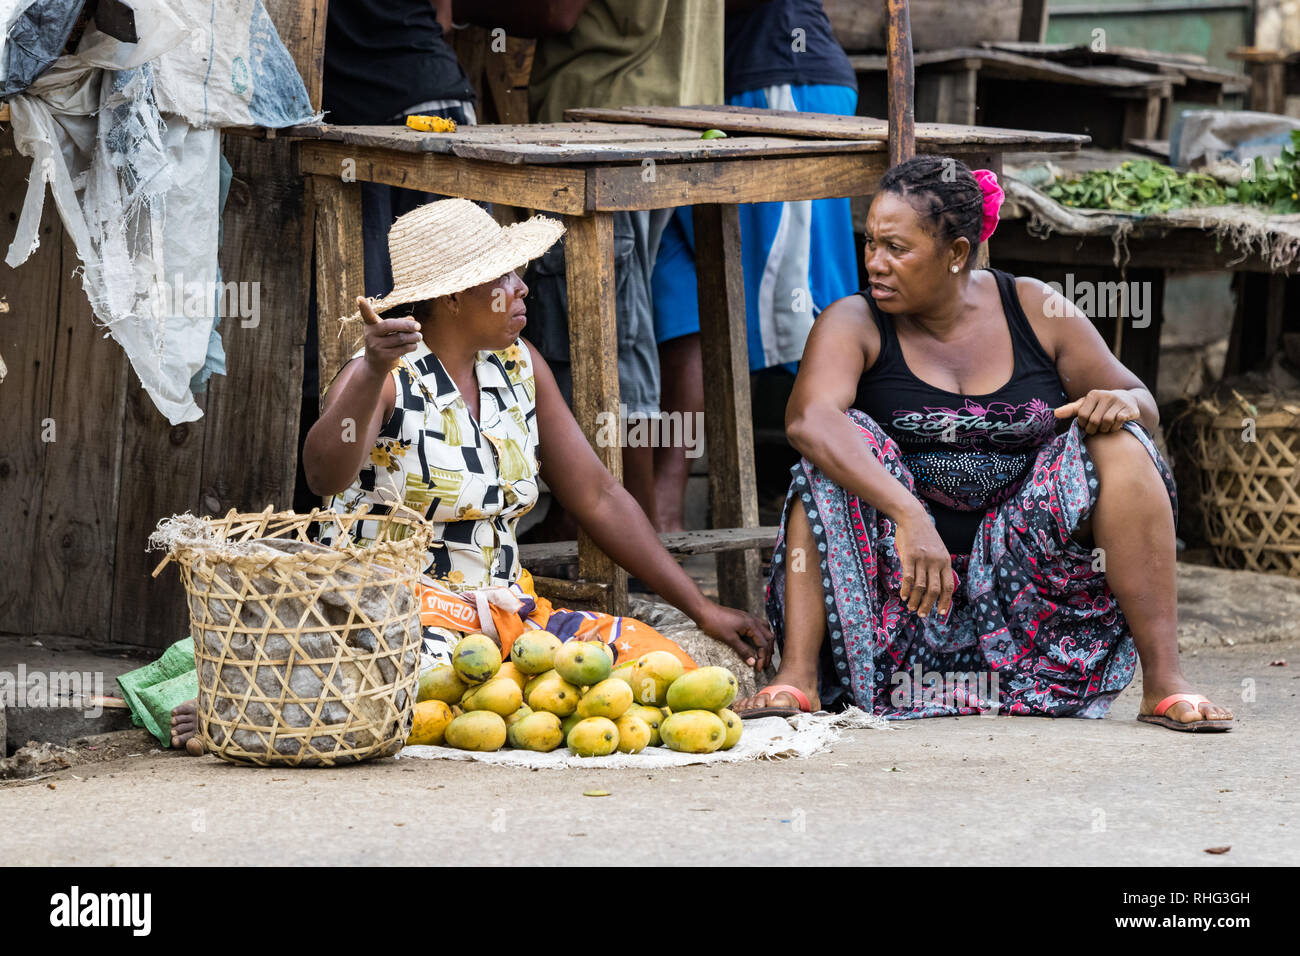 Toliara, Madagascar - January 10th, 2019: Two Malagasy women street vendors discussing sitting on the pavement at the local food market in Toliara, Ma - Stock Image